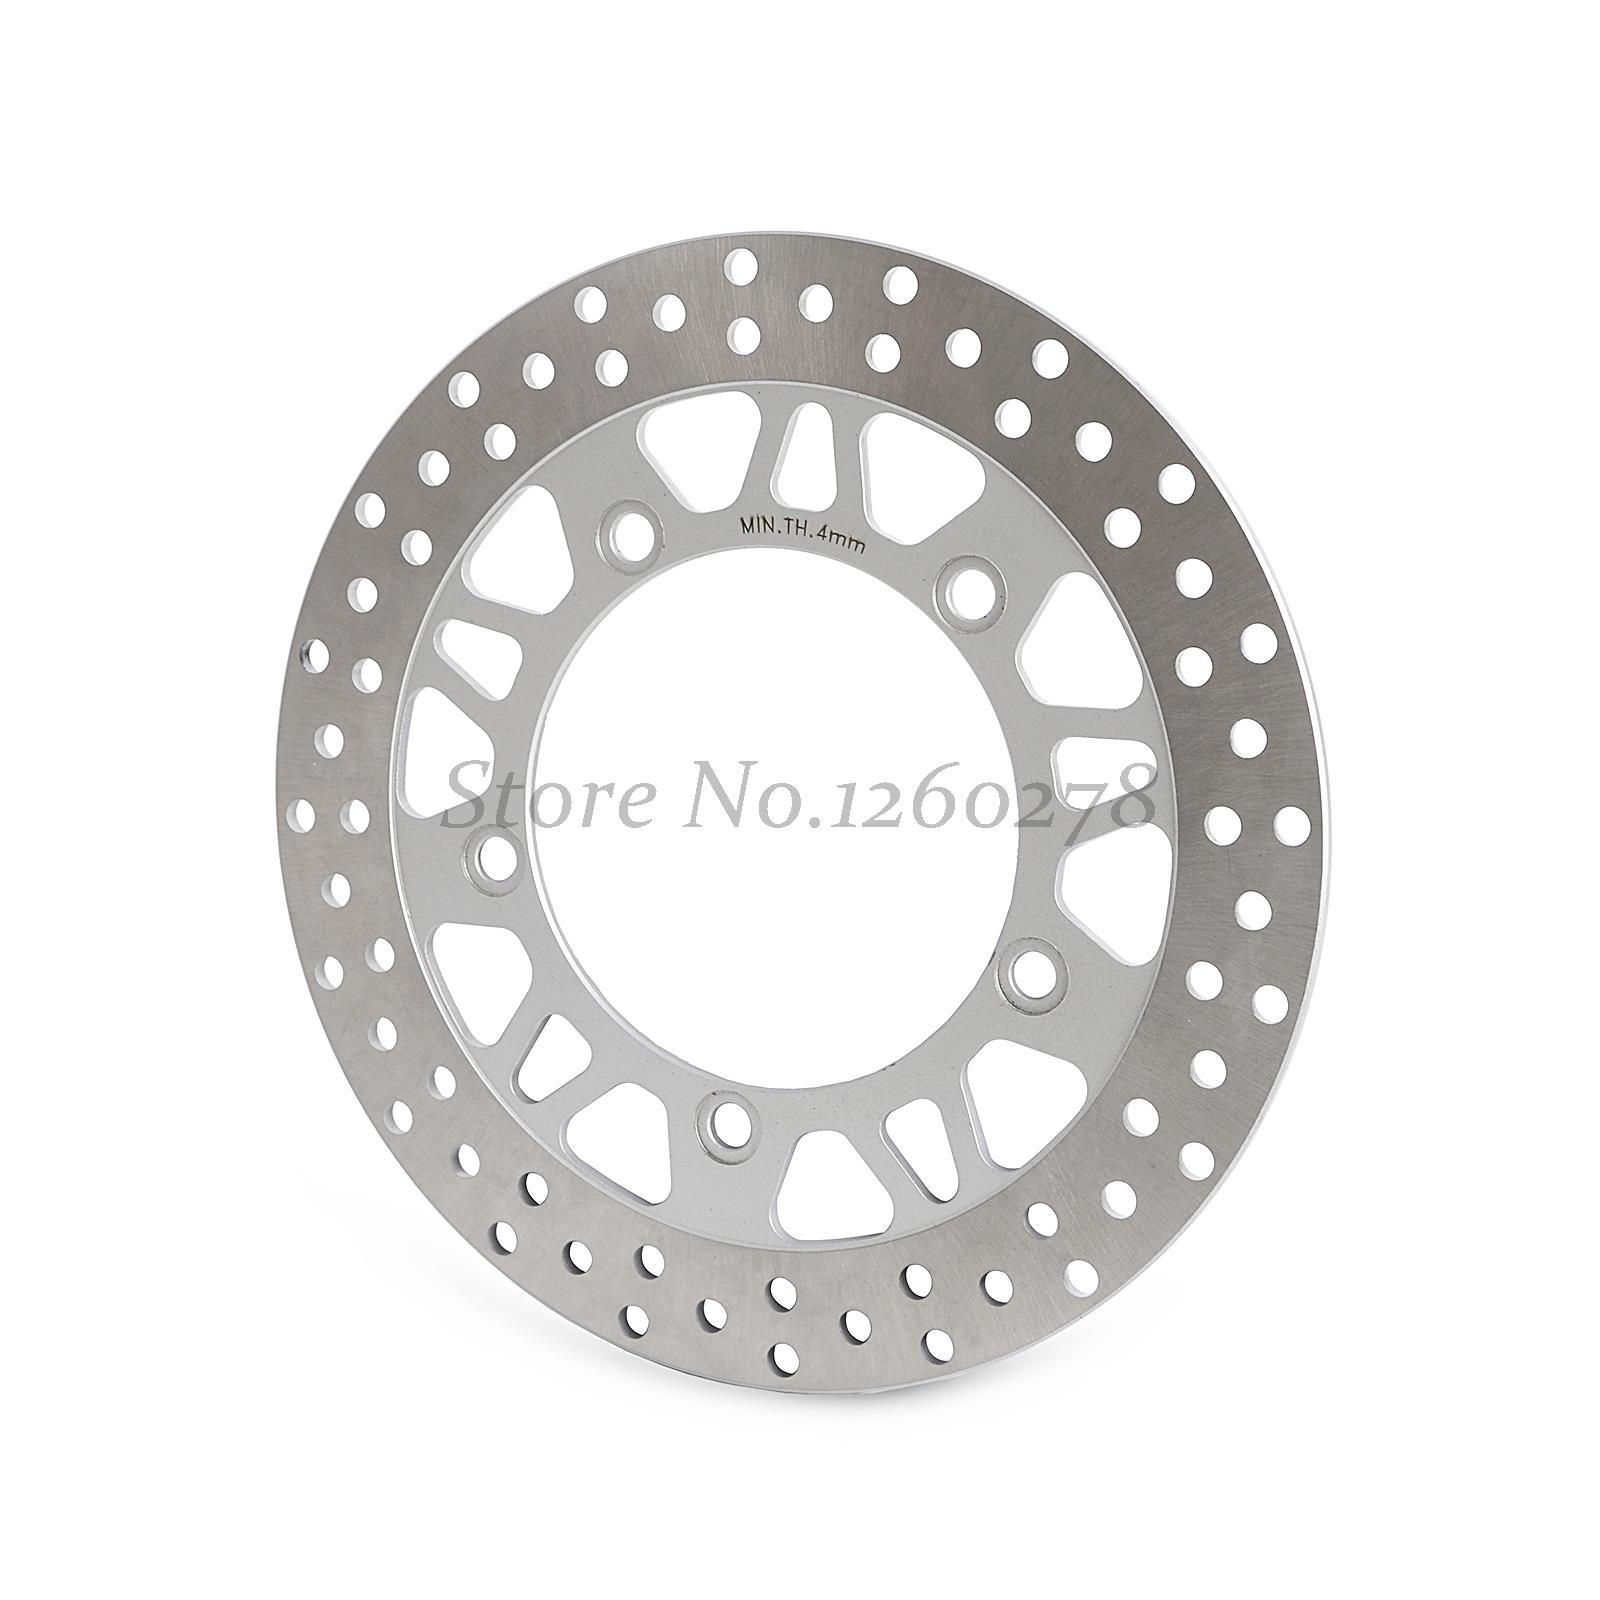 Floating Front Brake Disc Rotor Fits For Suzuki AN 250 Skywave Type M S 07 08